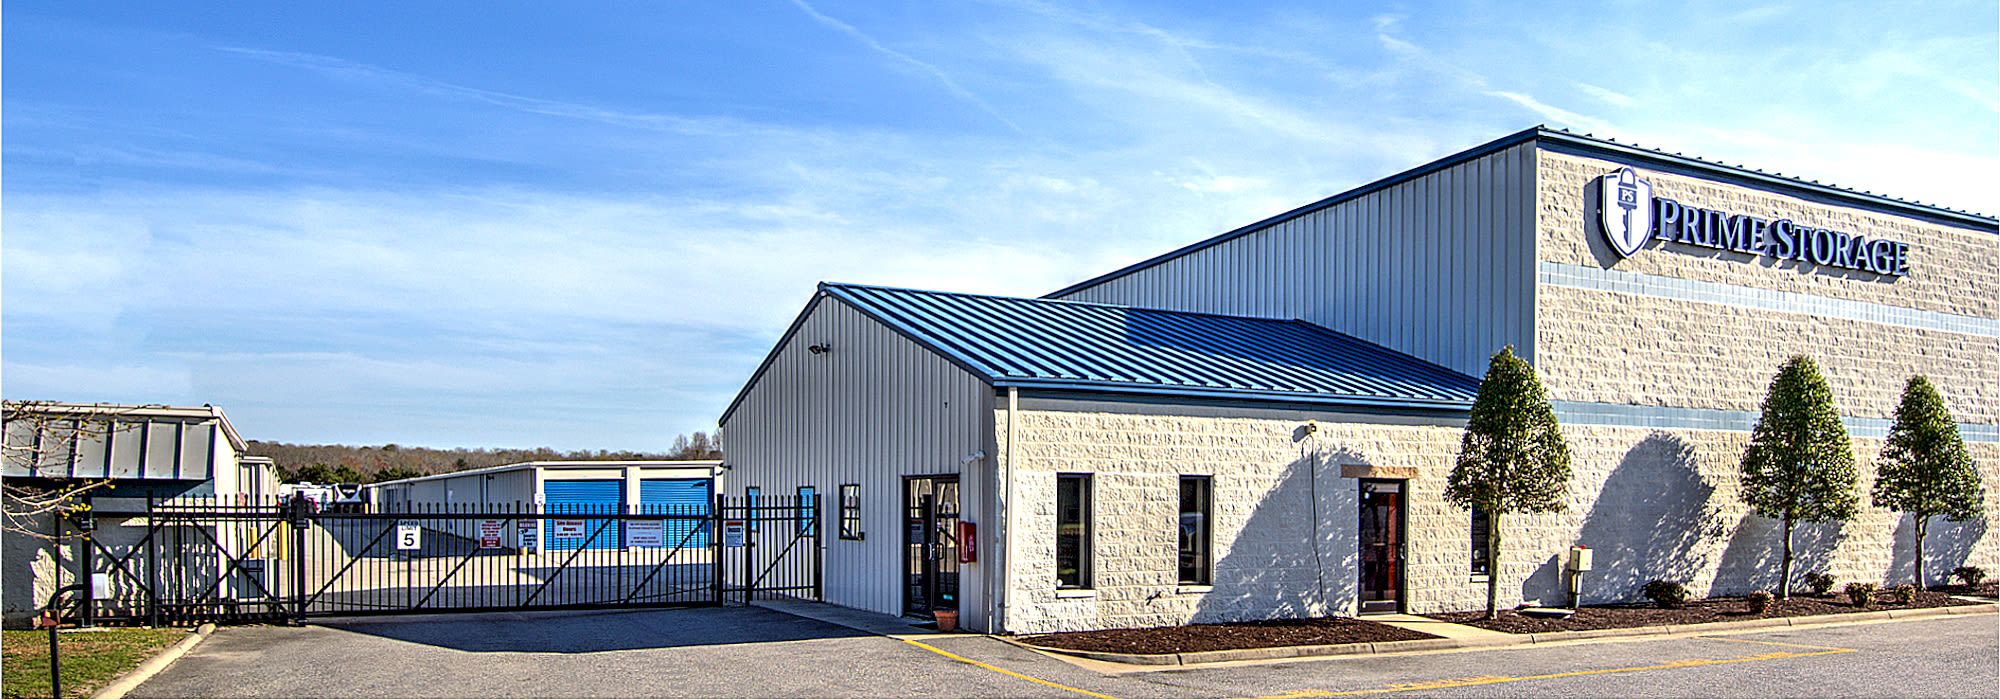 Prime Storage in Virginia Beach, VA